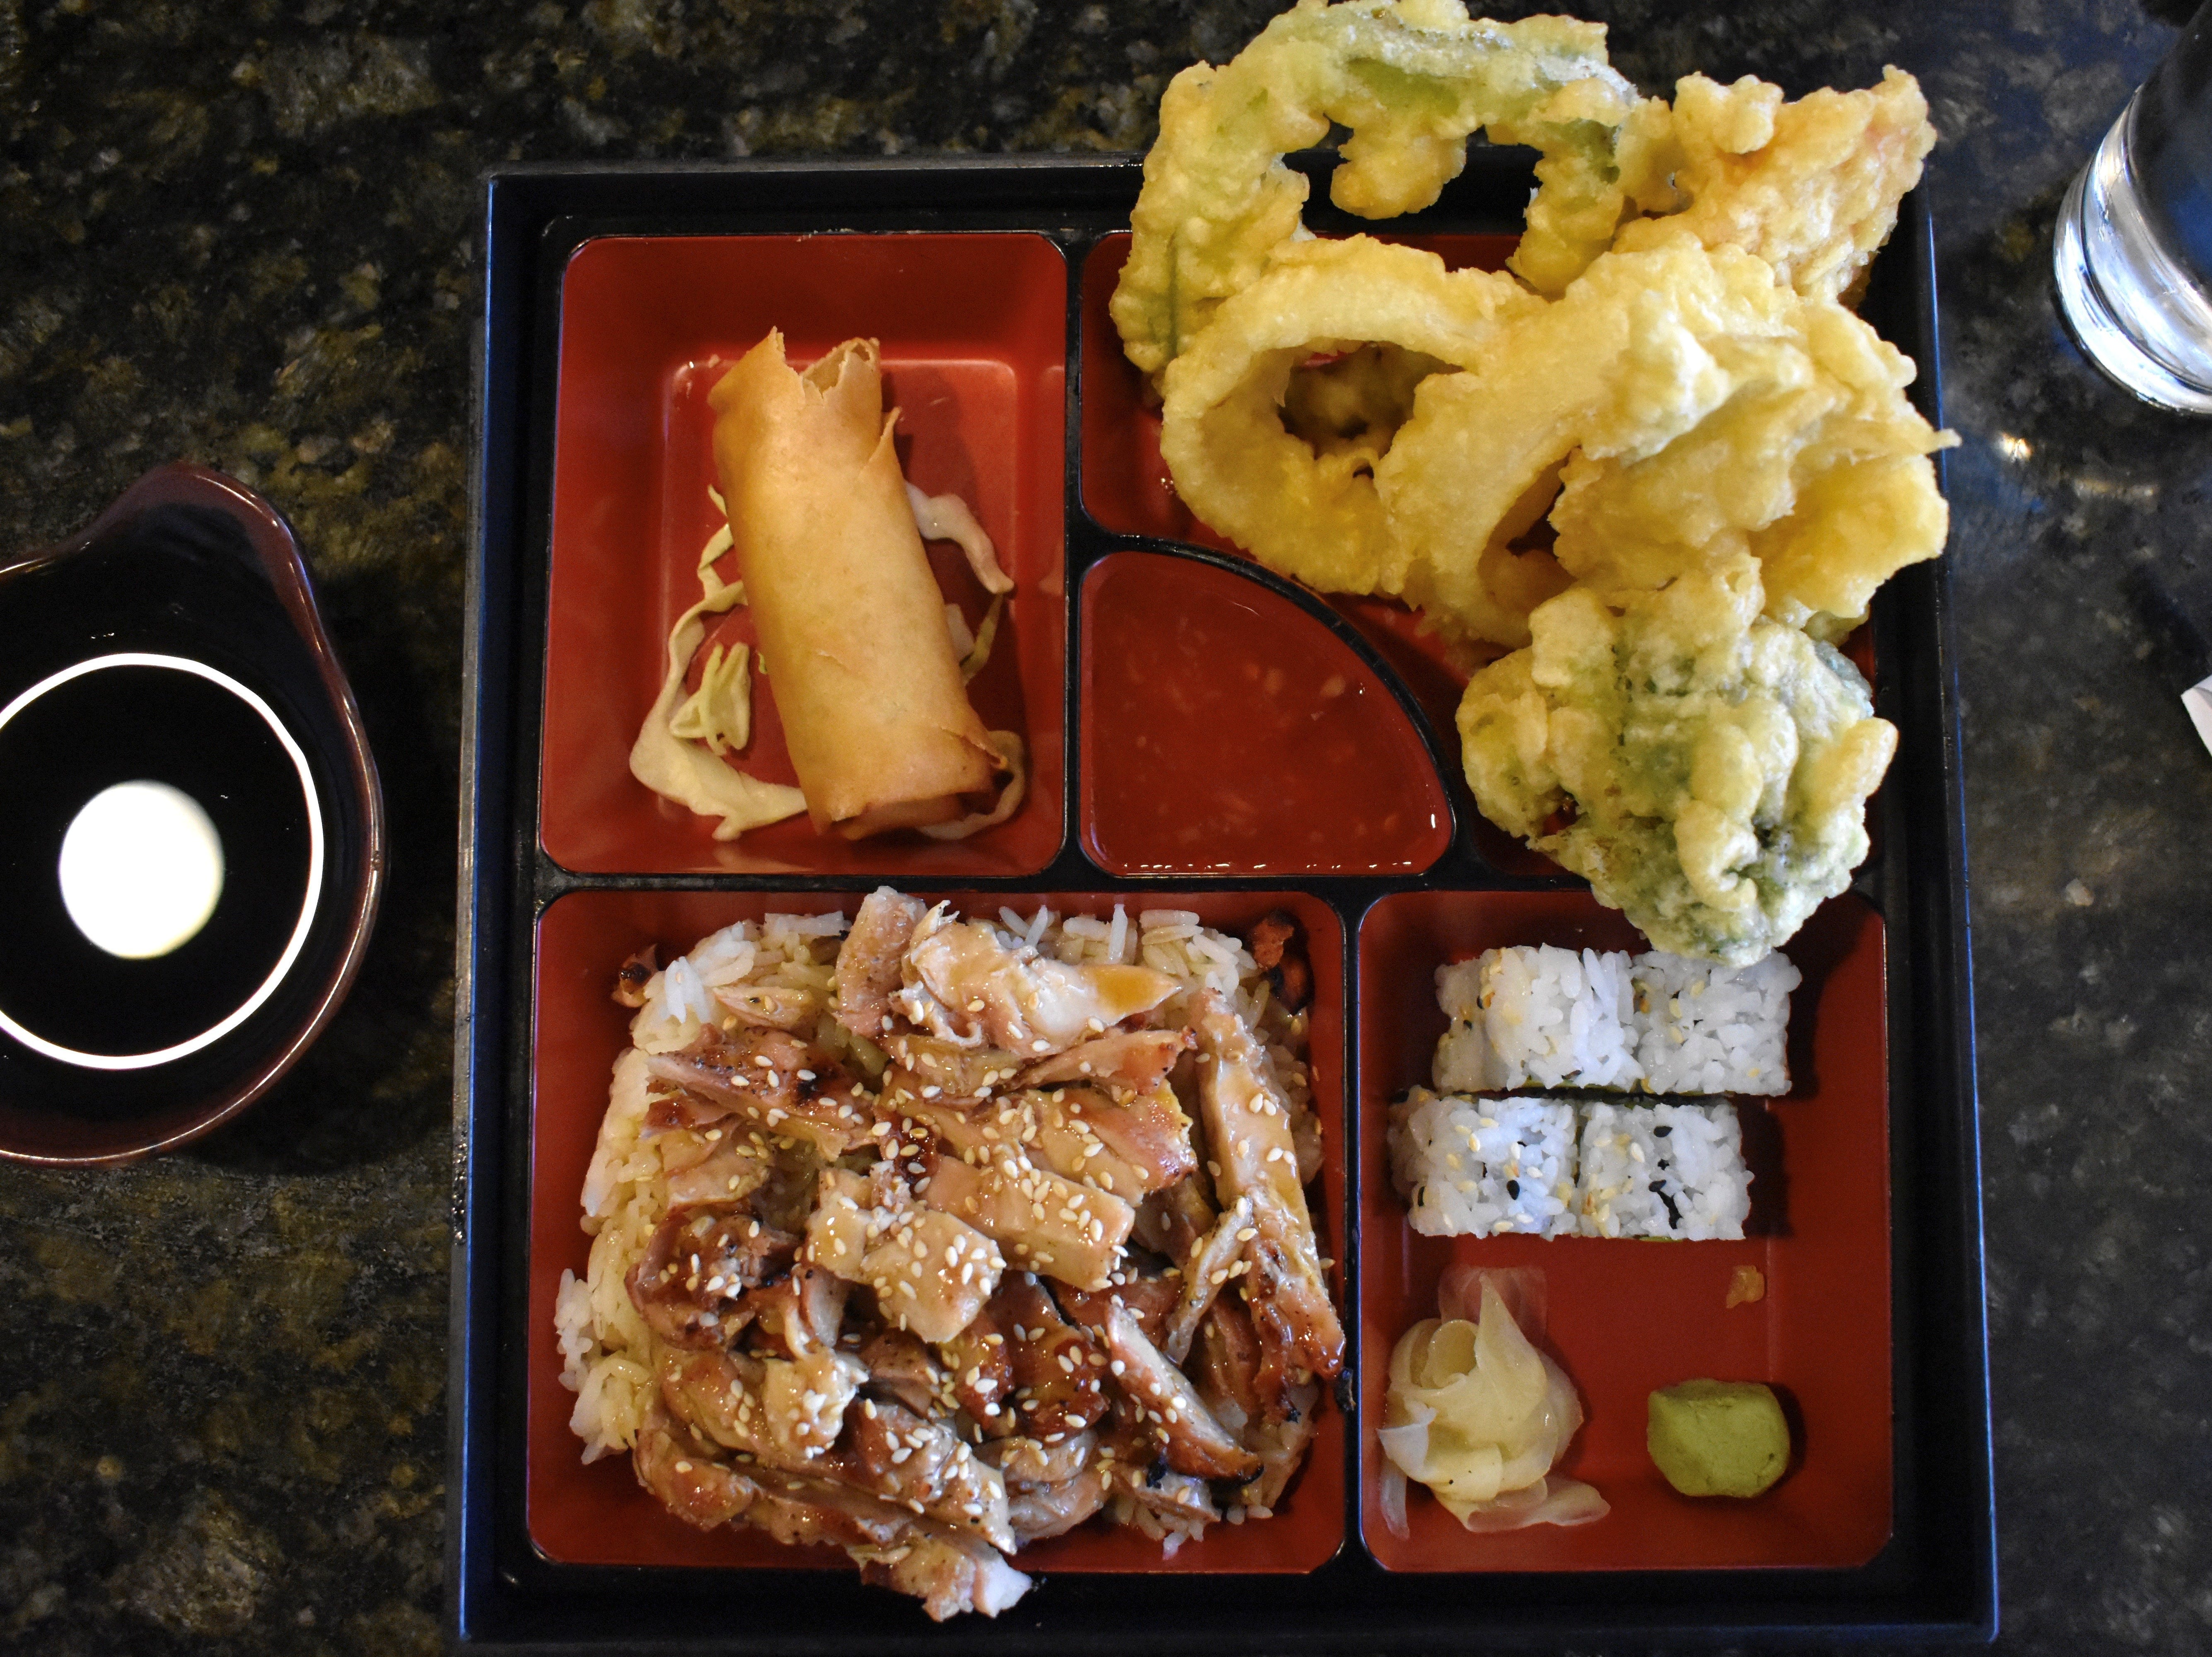 The teriyaki chicken lunch bento box at Kobe Steak and Seafood in downtown Redding.